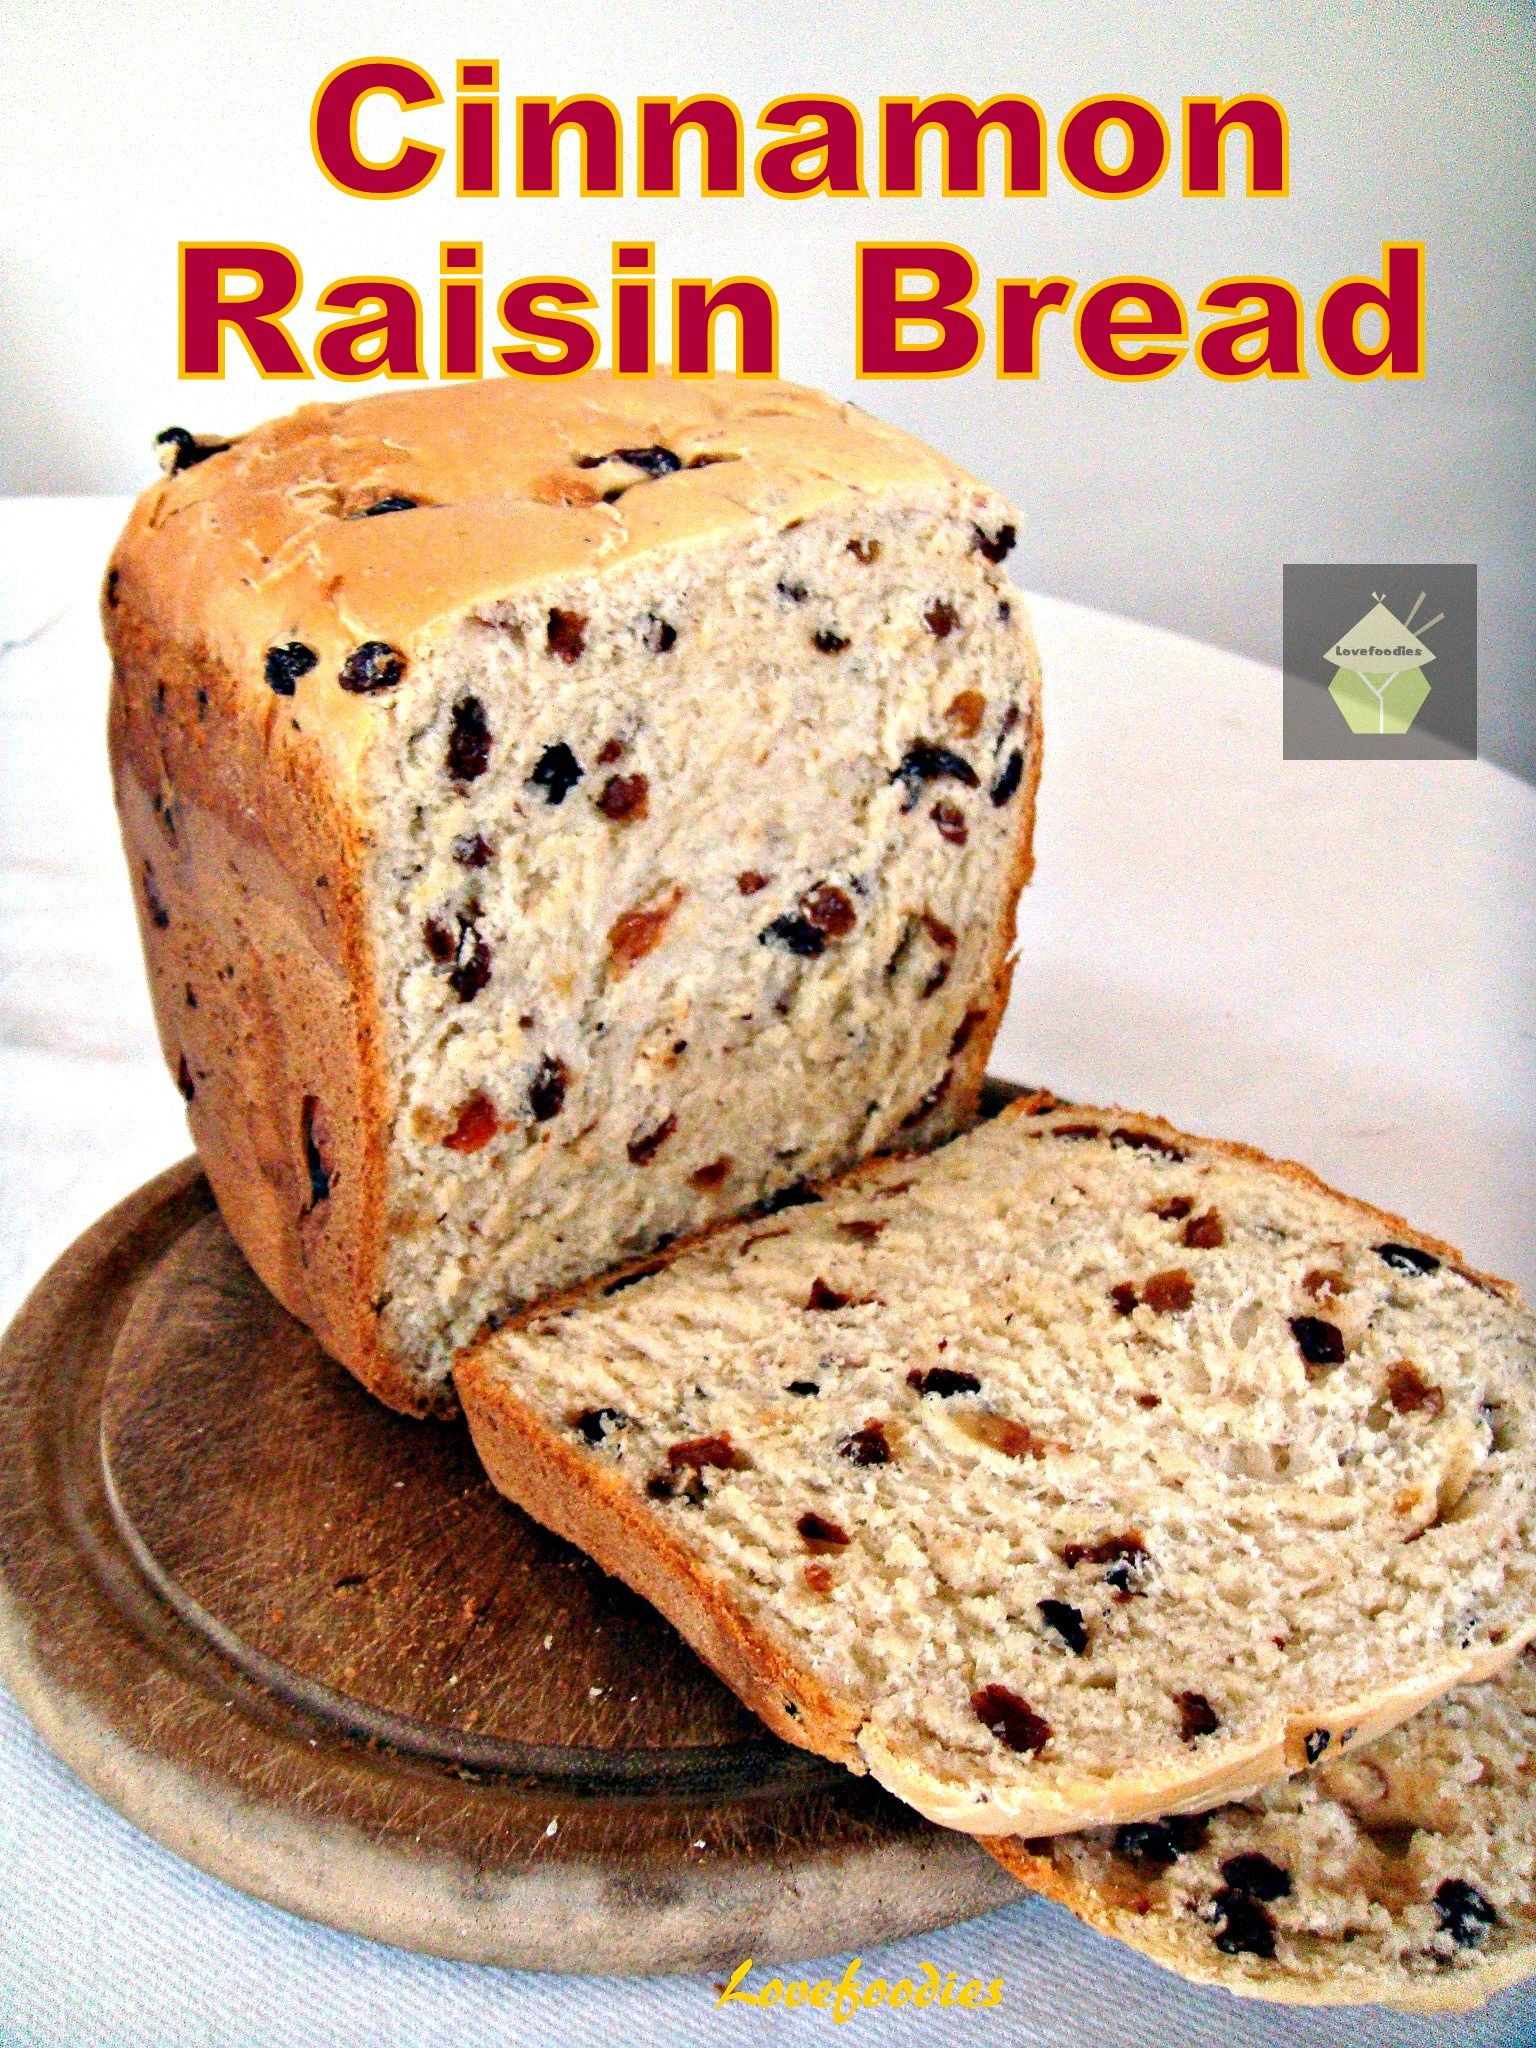 Cinnamon Raisin Bread A Nice Easy Bread To Make Using